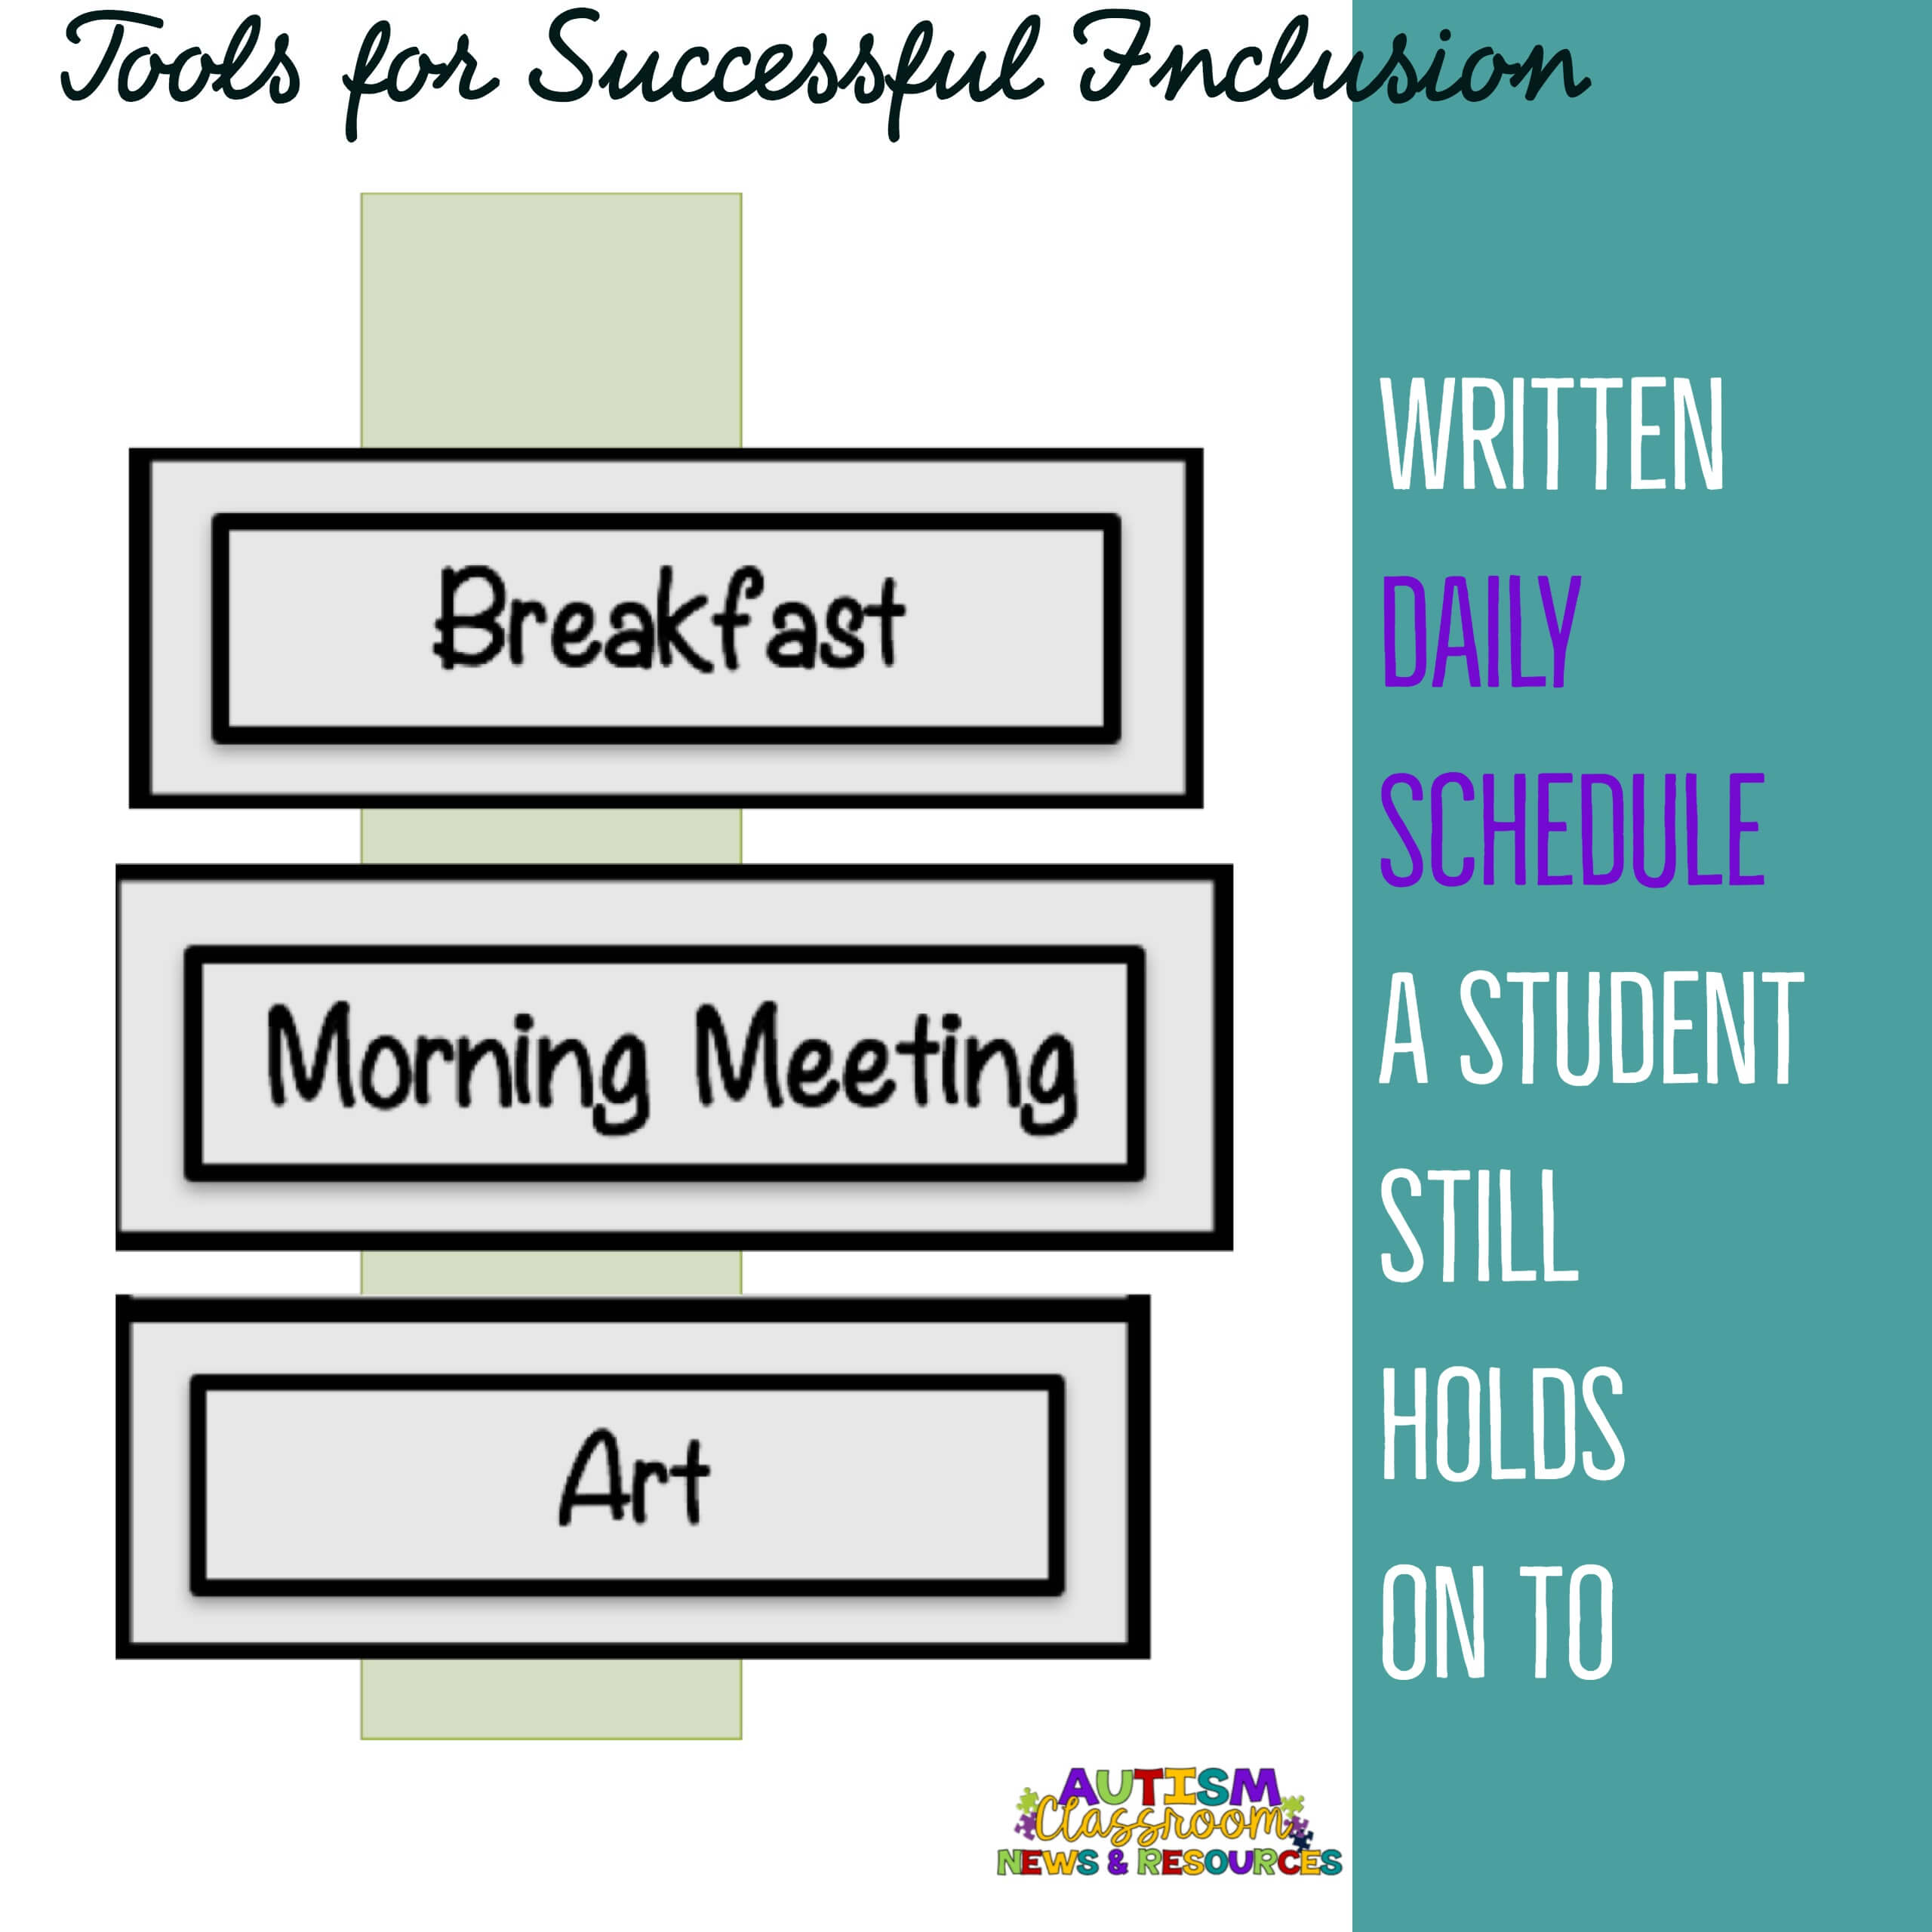 written schedule for breakfast, morning meeting and art.  Written daily schedule that a student can hang on to